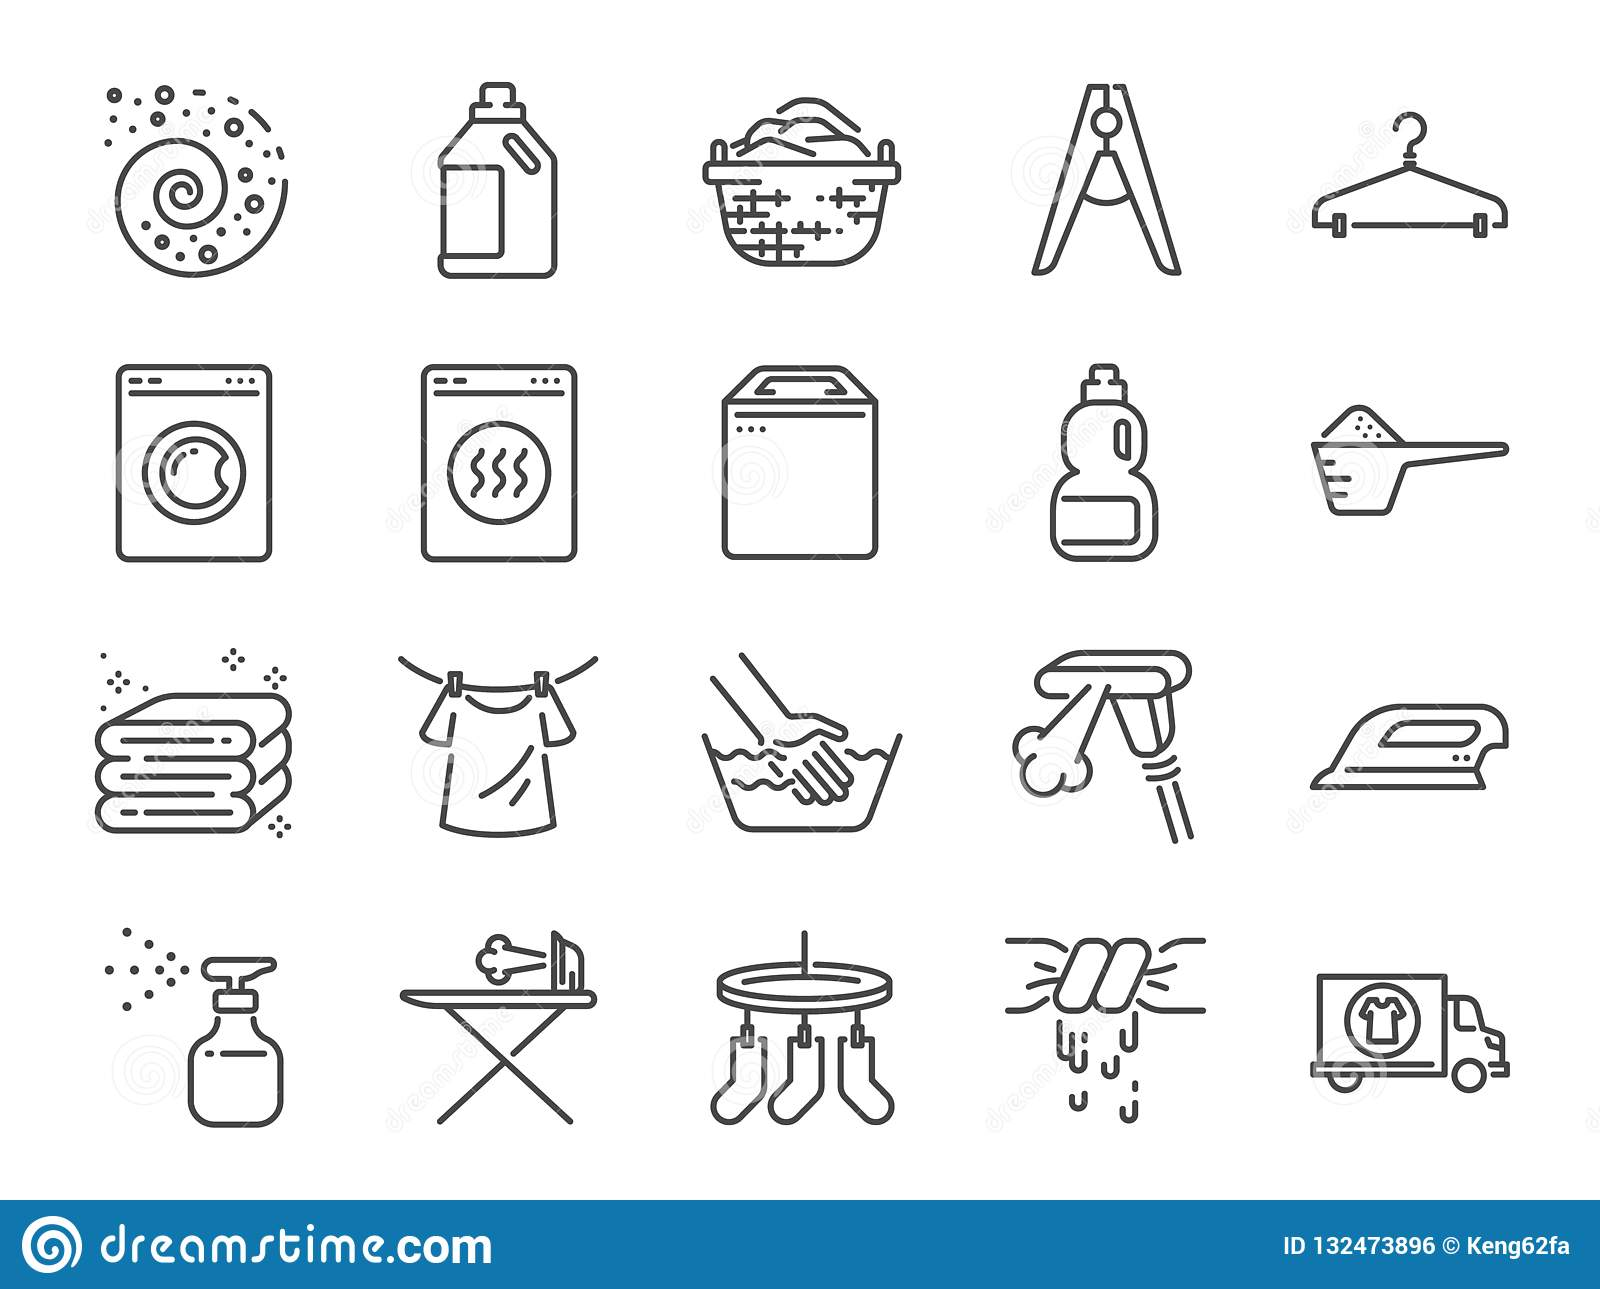 Laundry icon set. Included the icons as detergent, washing machine, fresh, clean, iron and more.